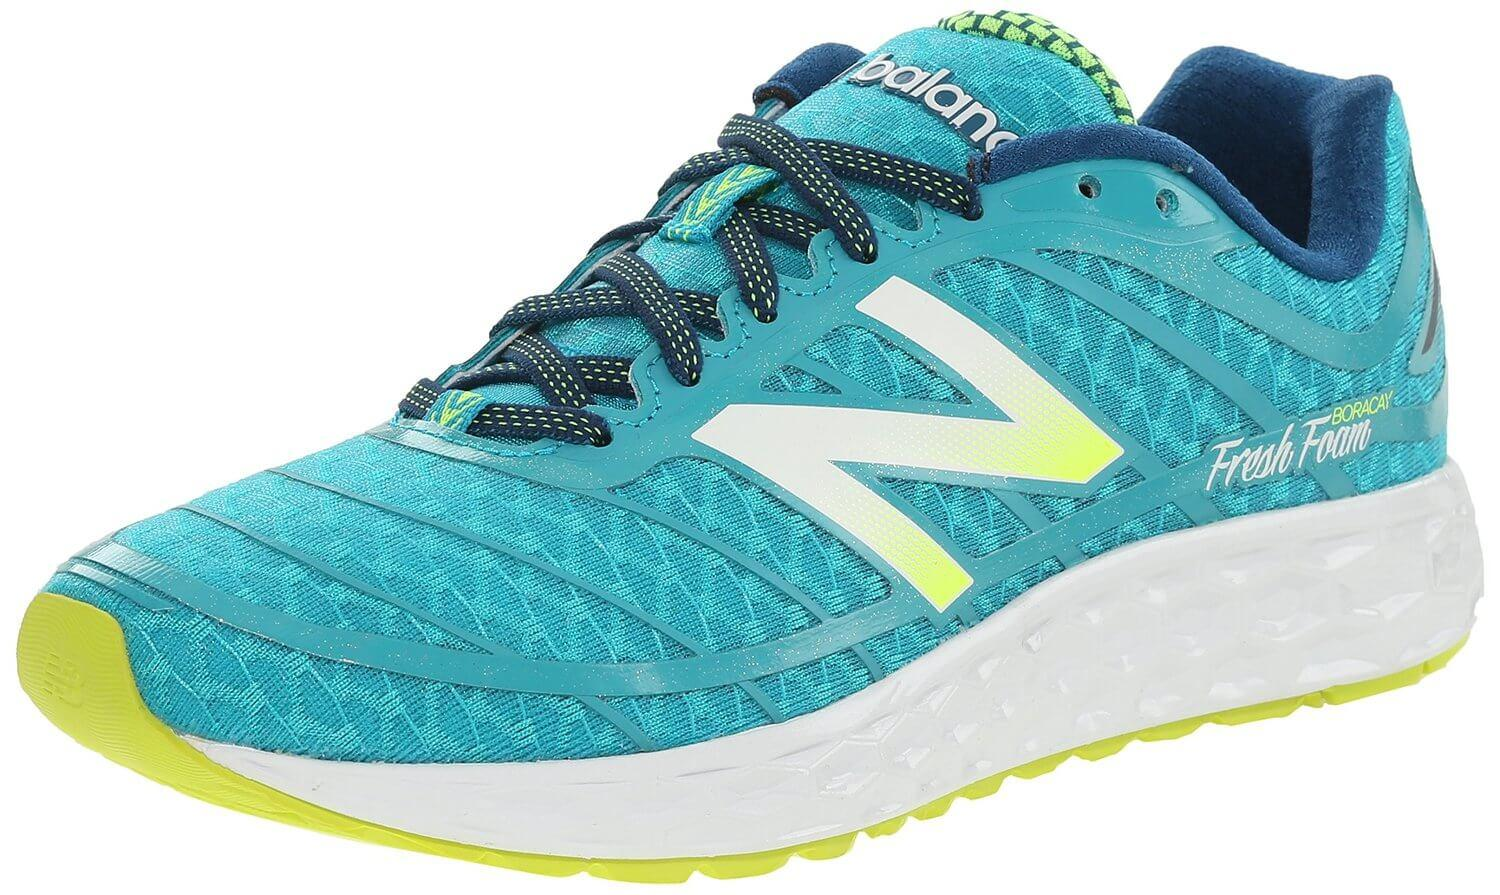 The New Balance Fresh Foam Boracay 980v2 is a great shoe for runners with wider feet.